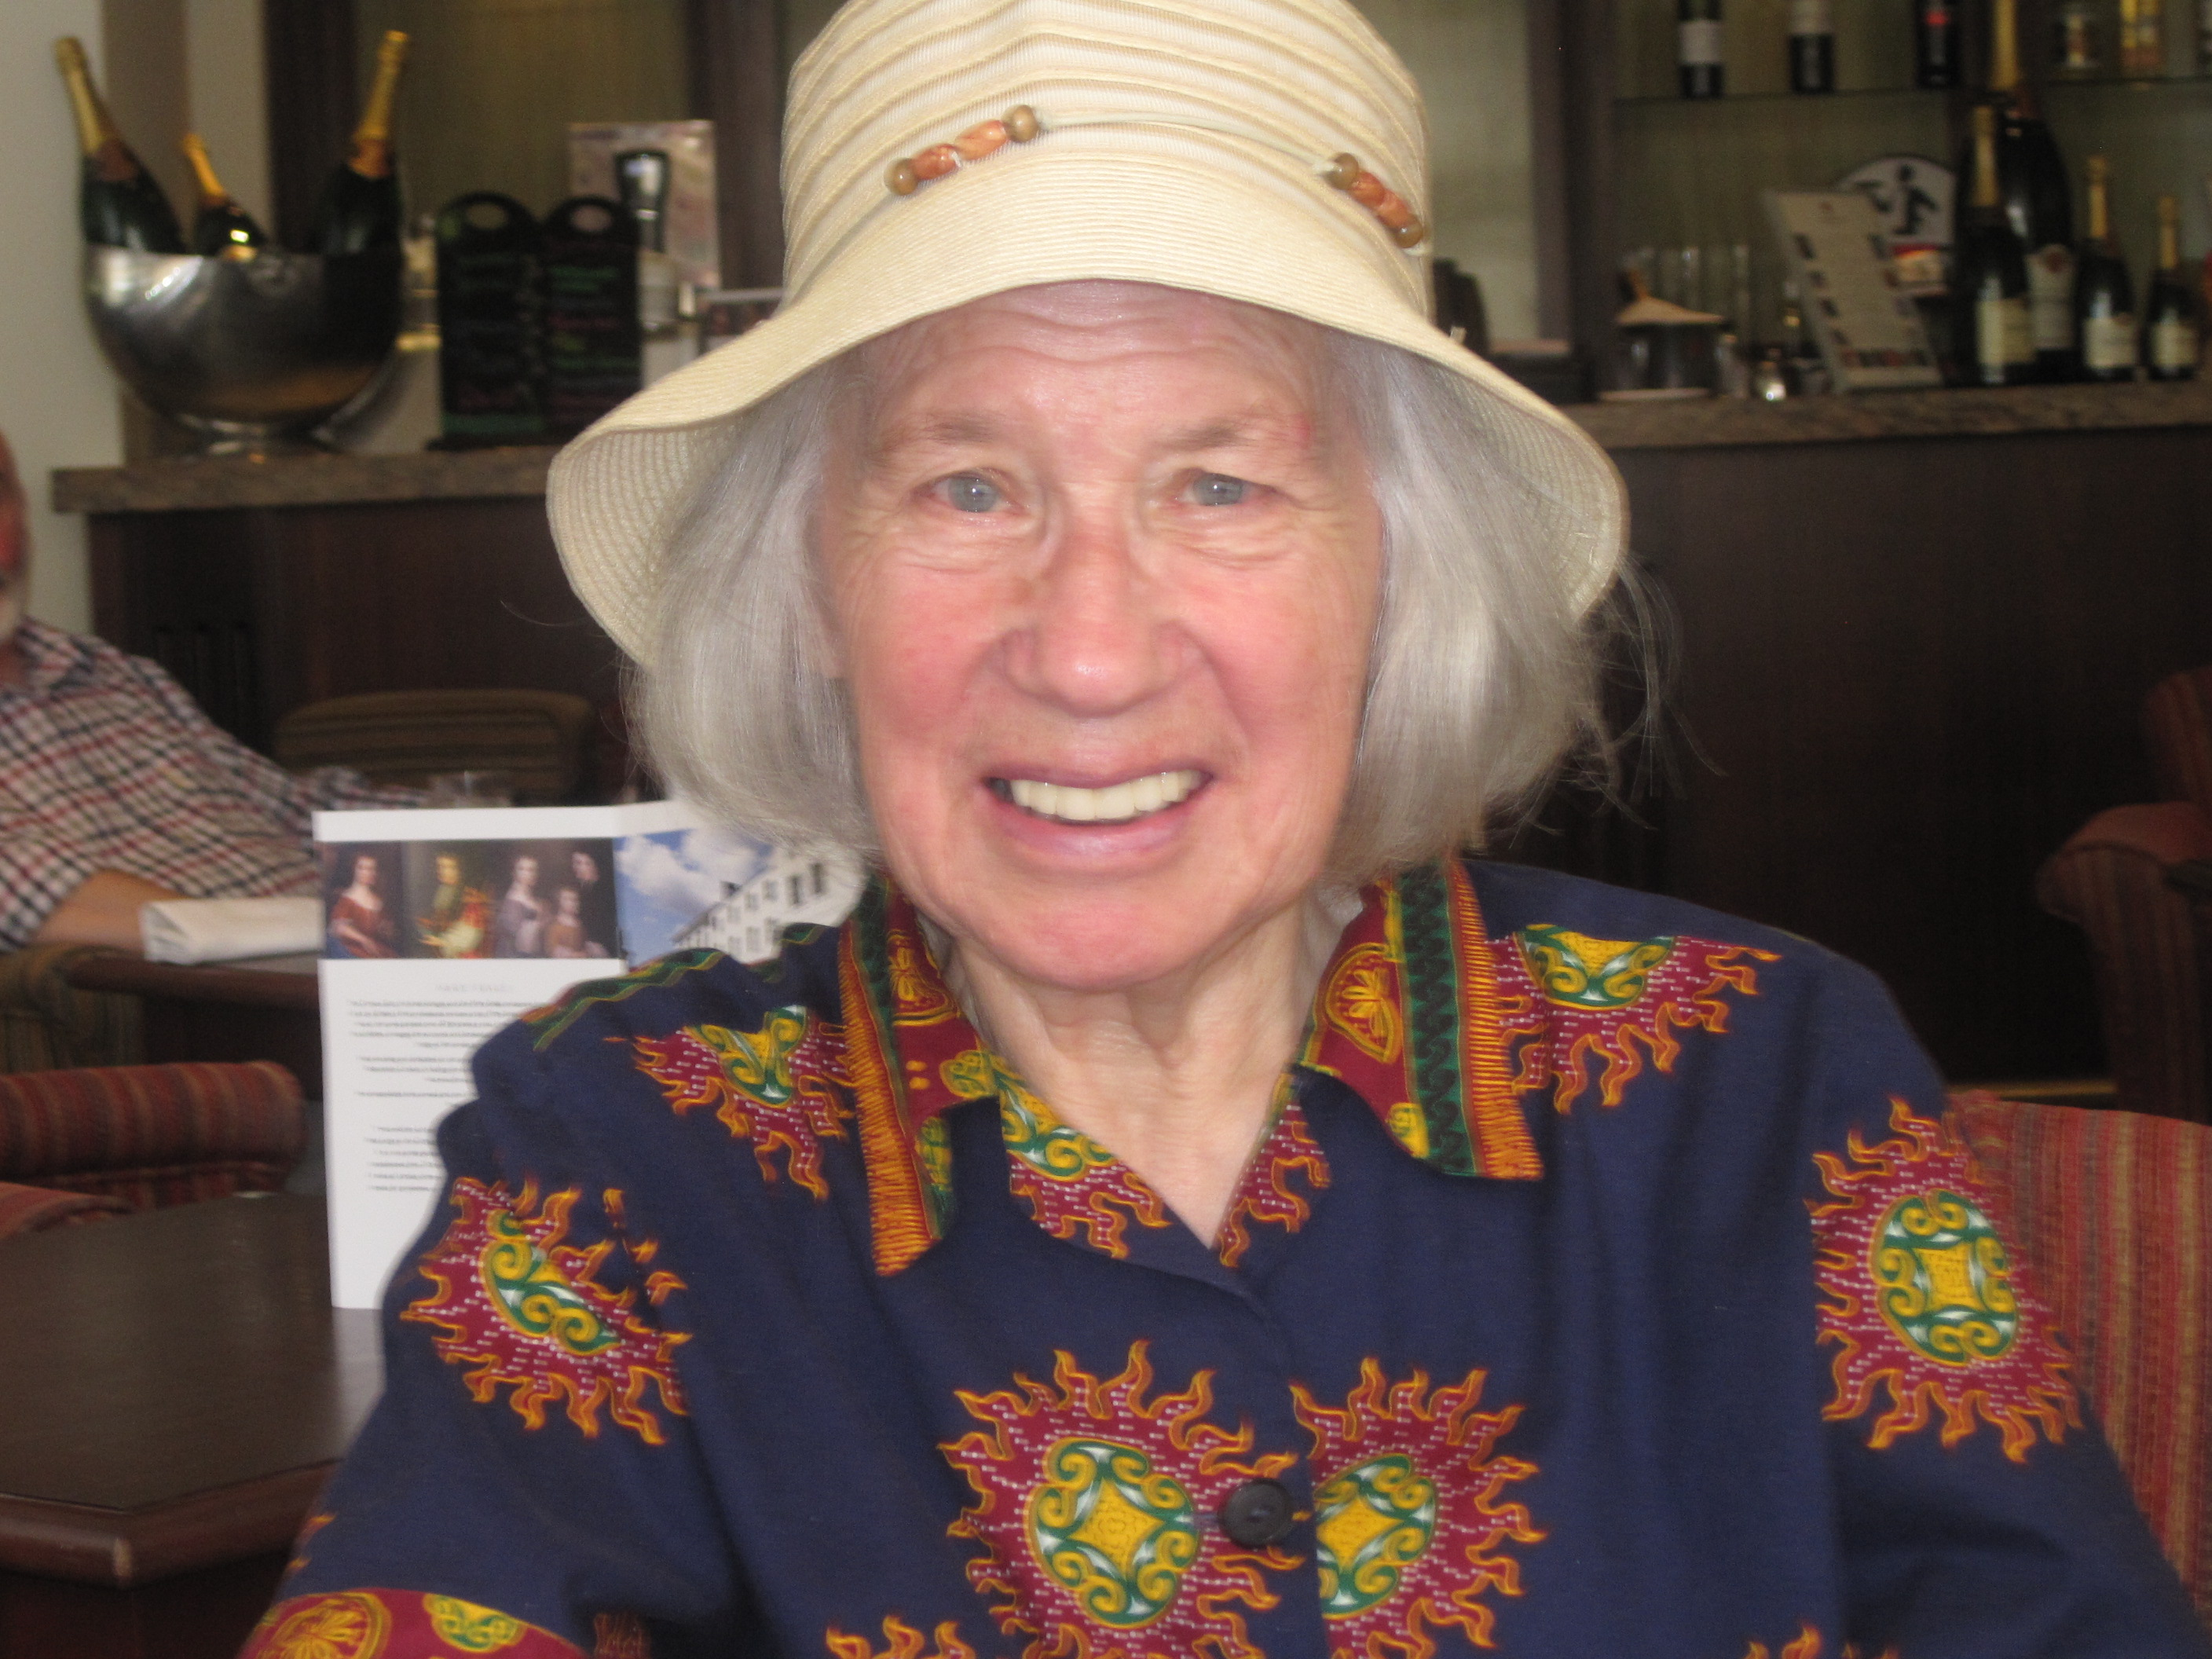 A picture of Iva, 85, she wears a sun hat and a bright shirt